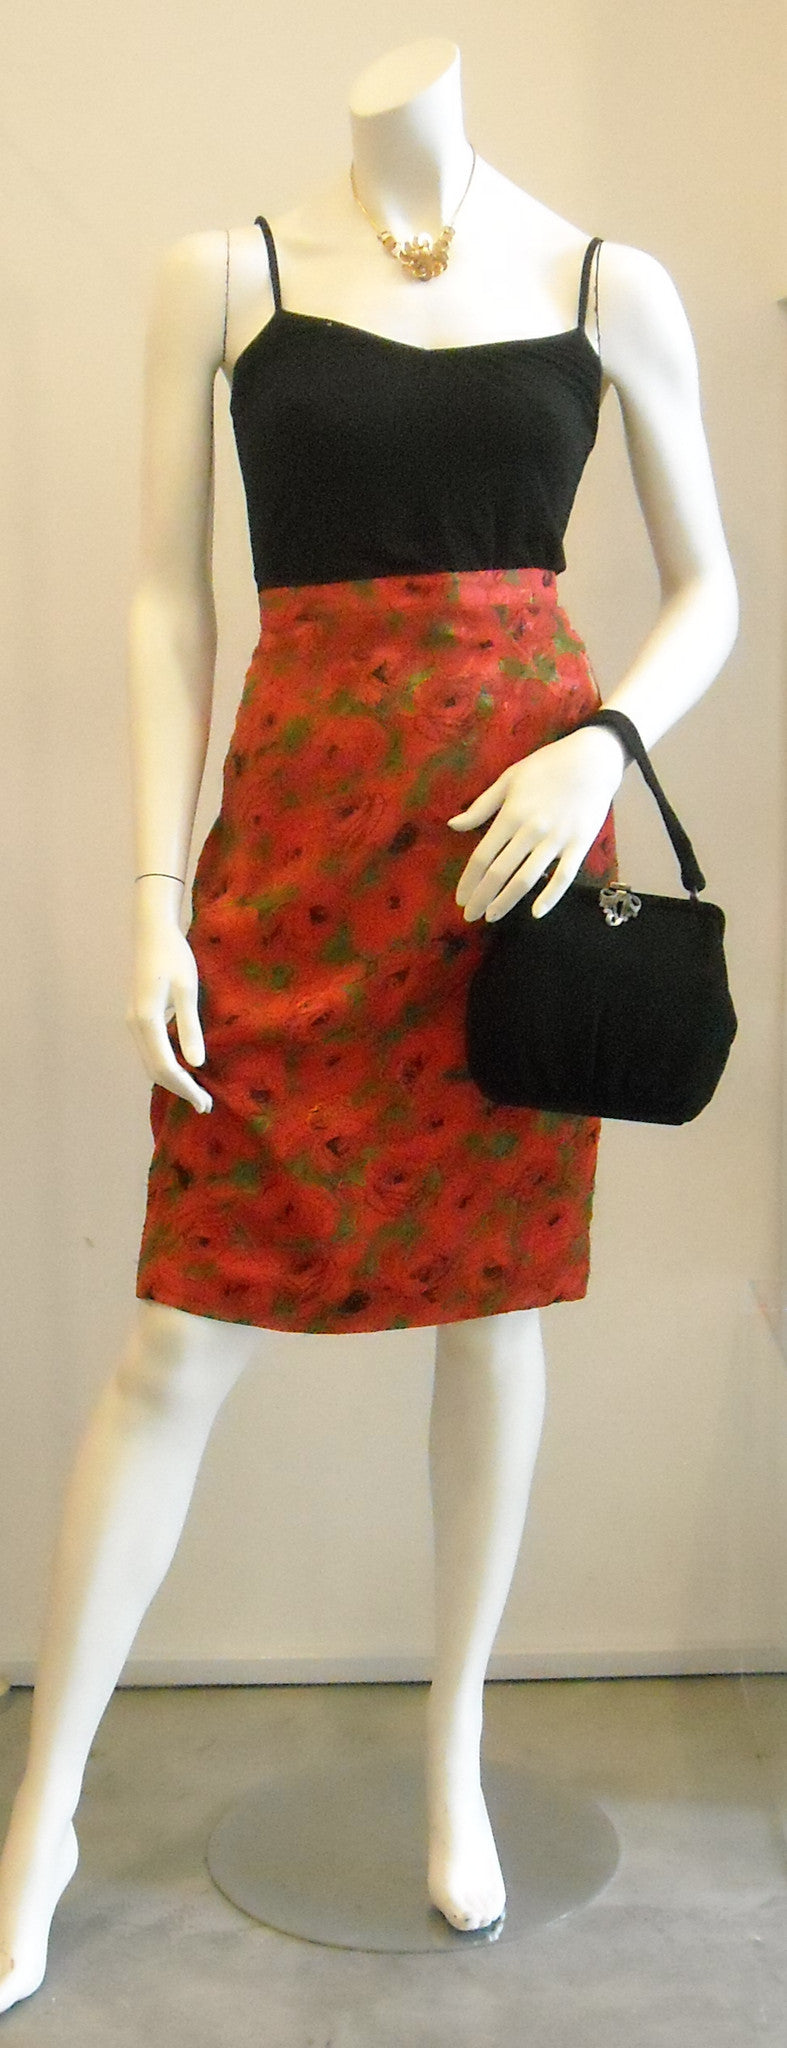 Red Poppy Garden Vintage Skirt